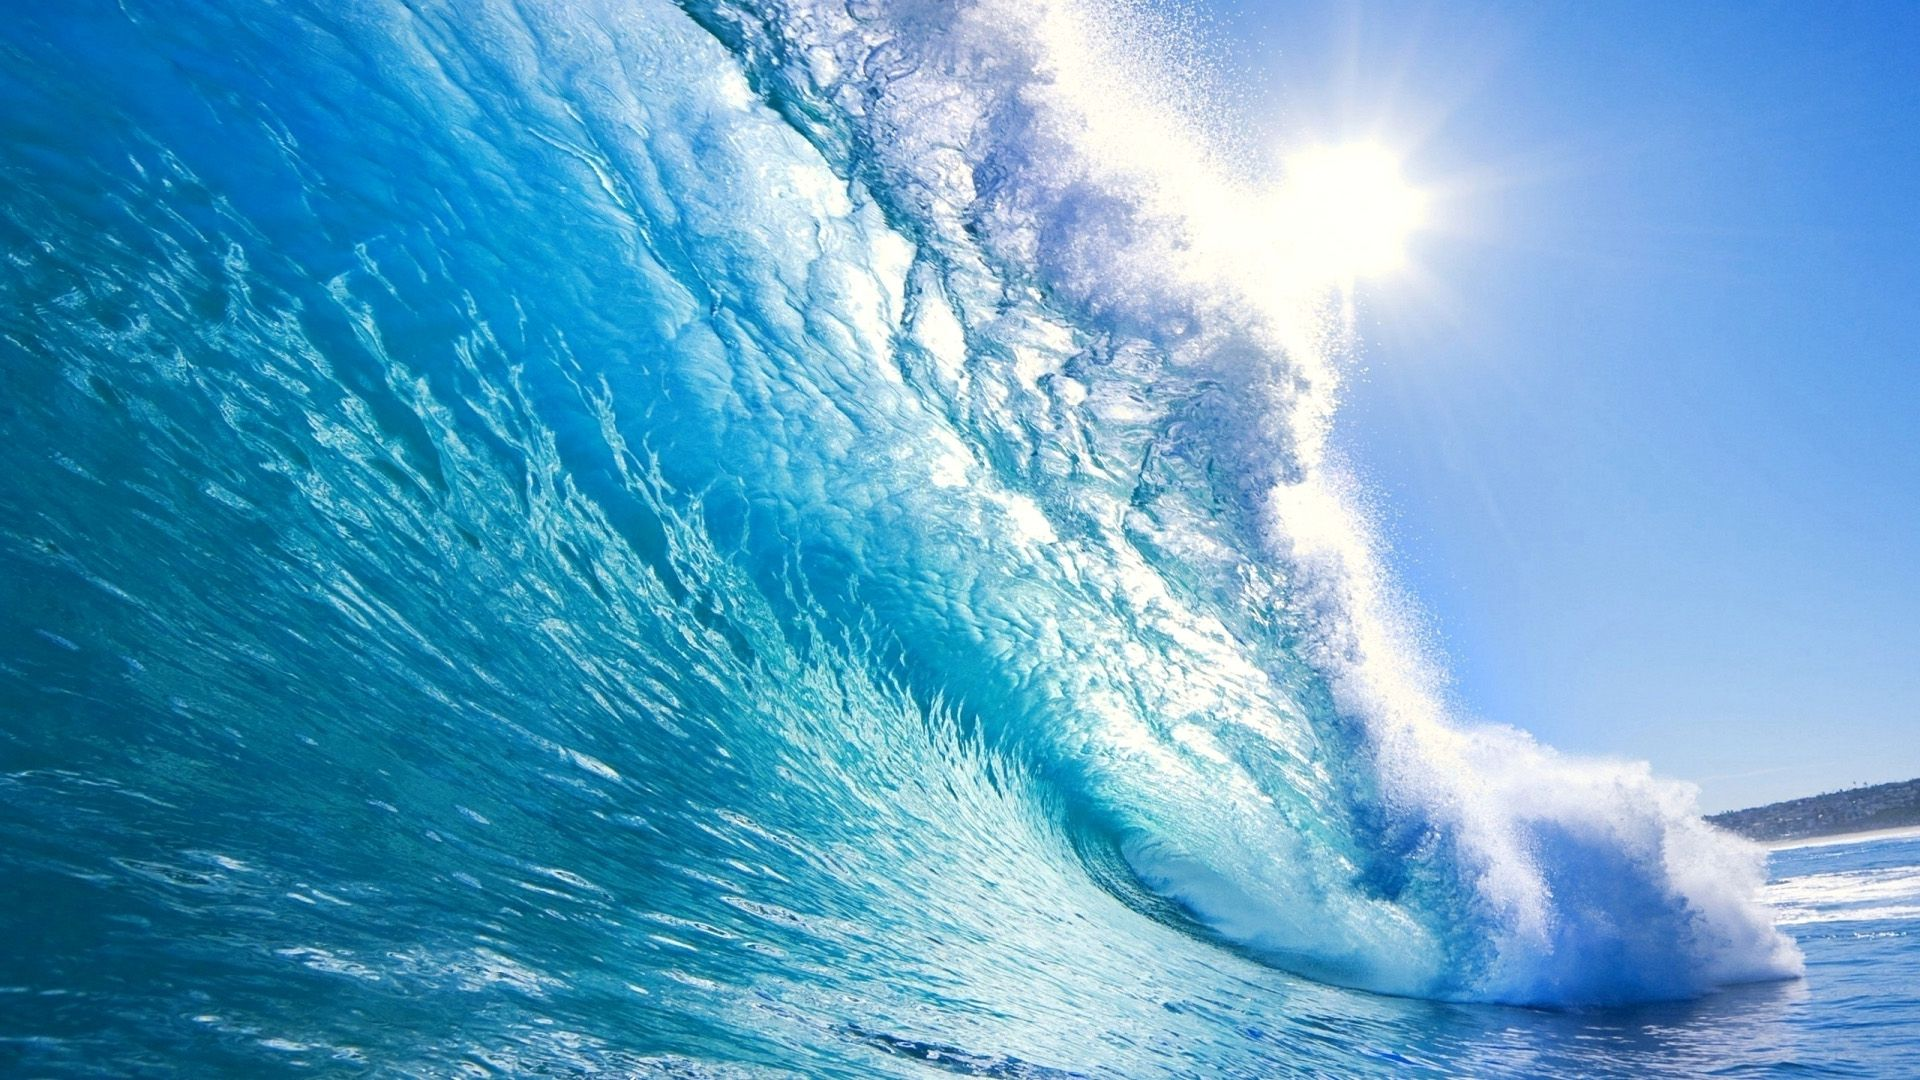 10 Most Popular Ocean Waves Desktop Wallpaper Full Hd 1920 1080 For Pc Desktop Waves Wallpaper Ocean Waves Ocean Wallpaper